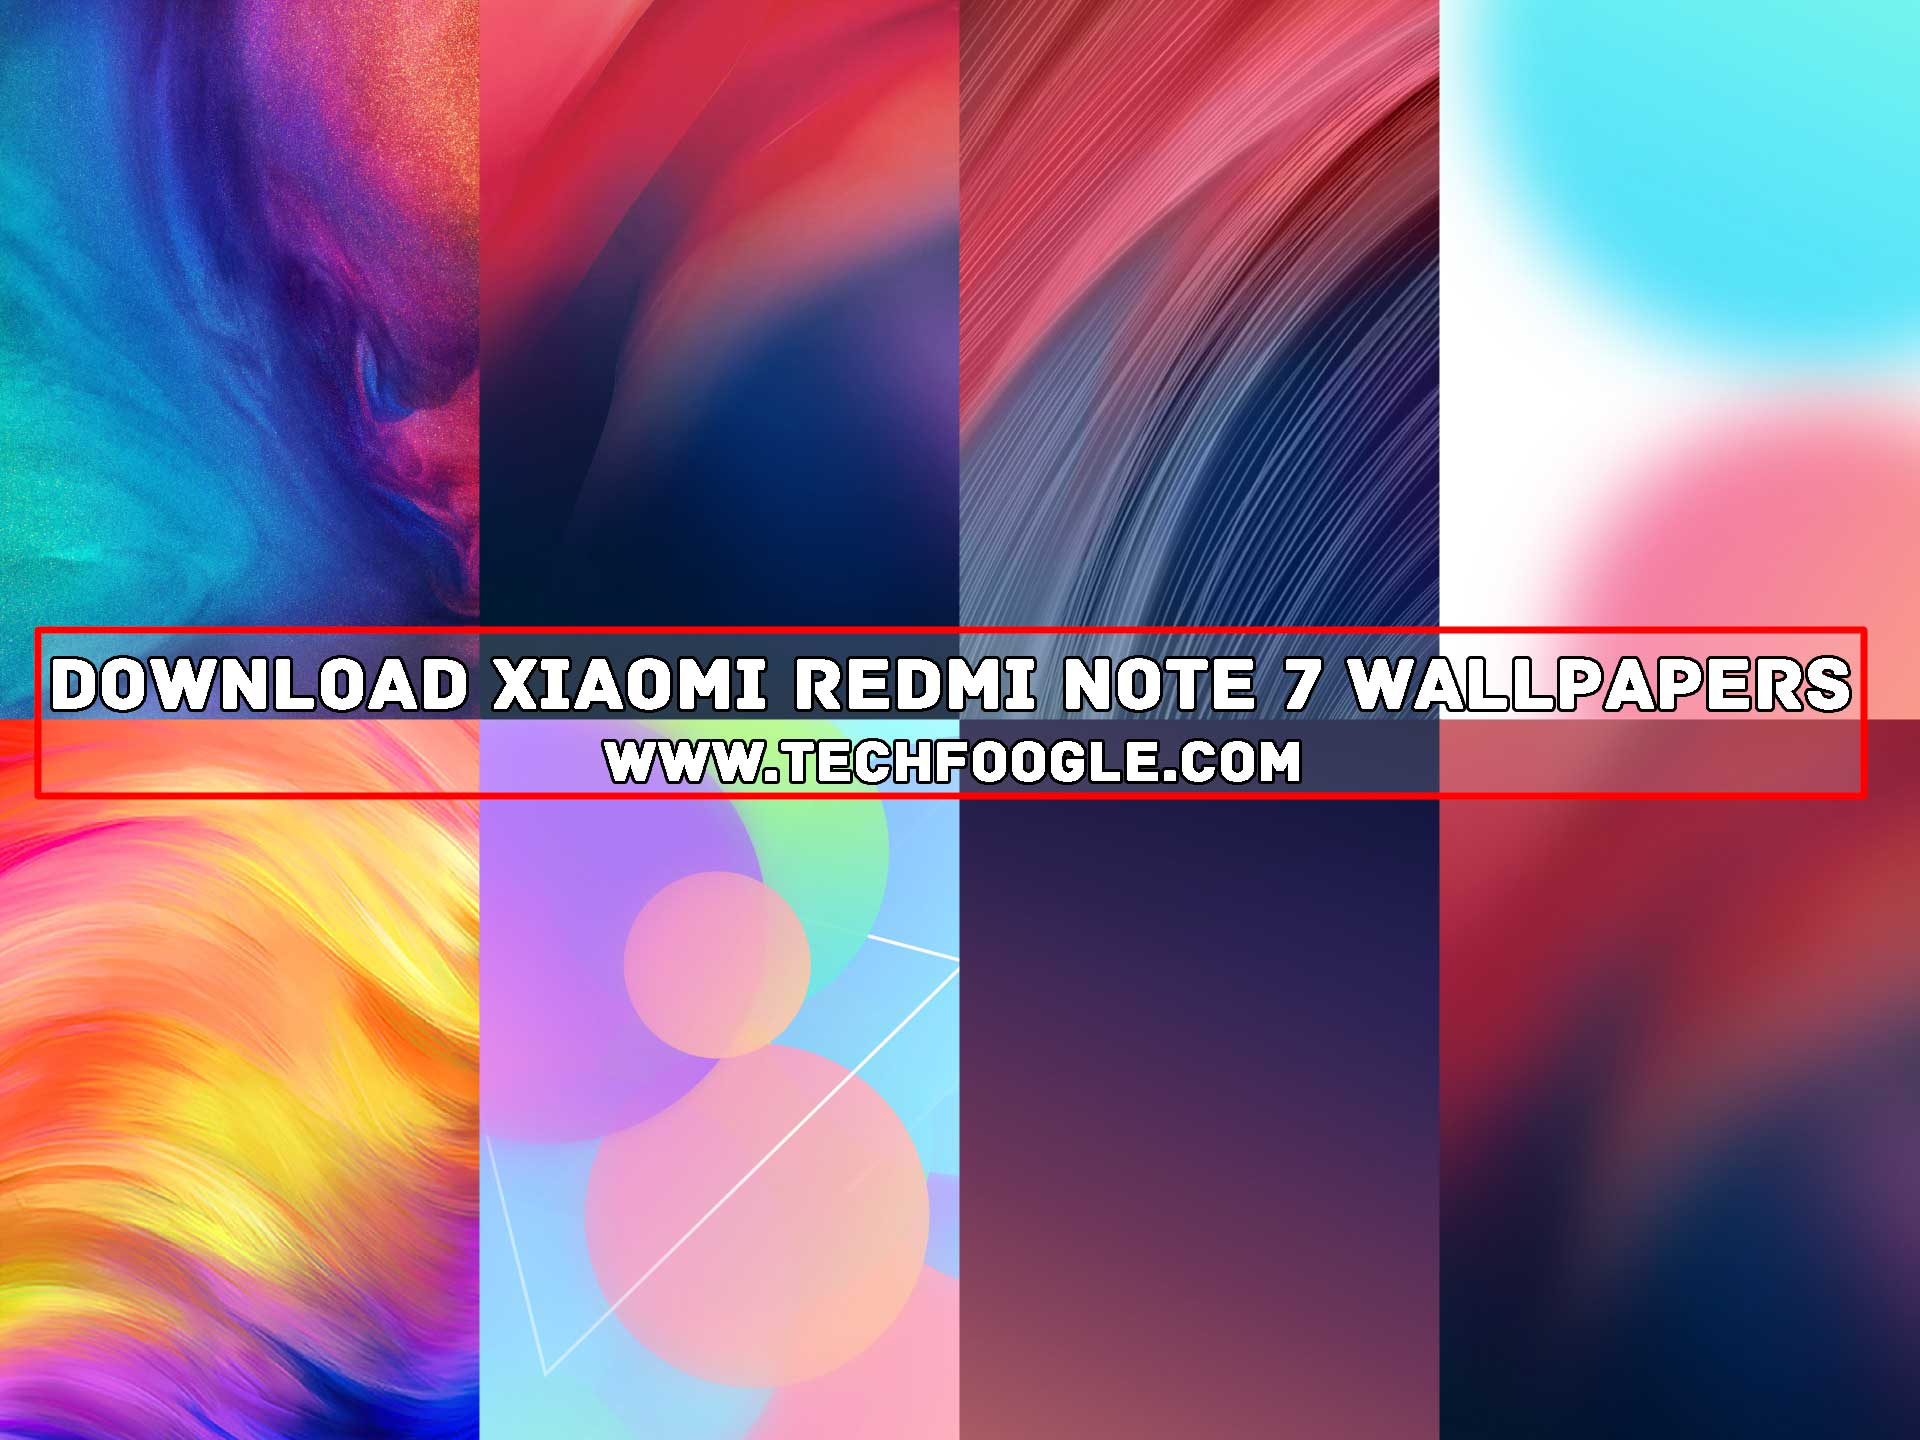 Free Download Xiaomi Redmi Note 7 Wallpapers Collage